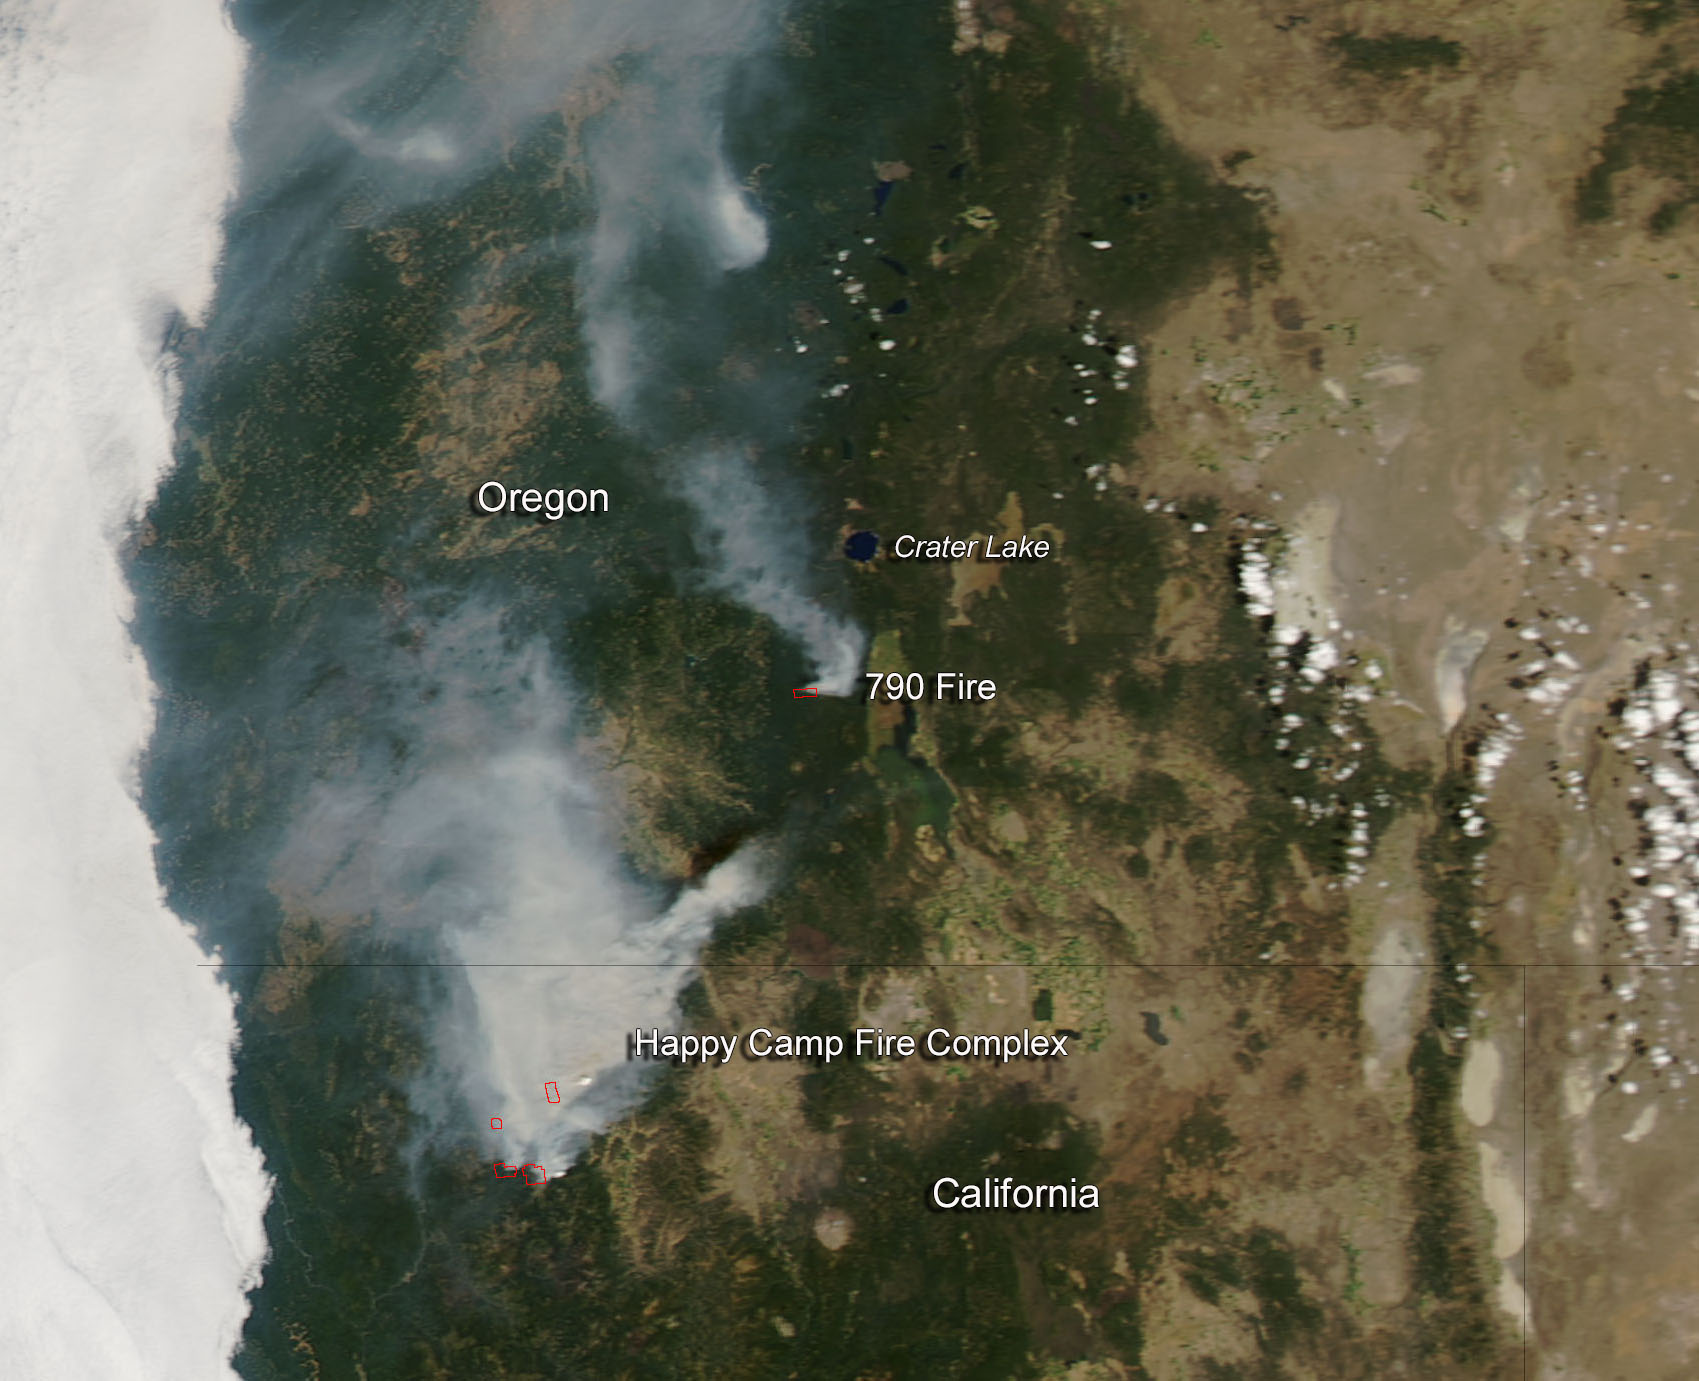 Happy Camp Fire in California and 790 Fire in Oregon | NASA